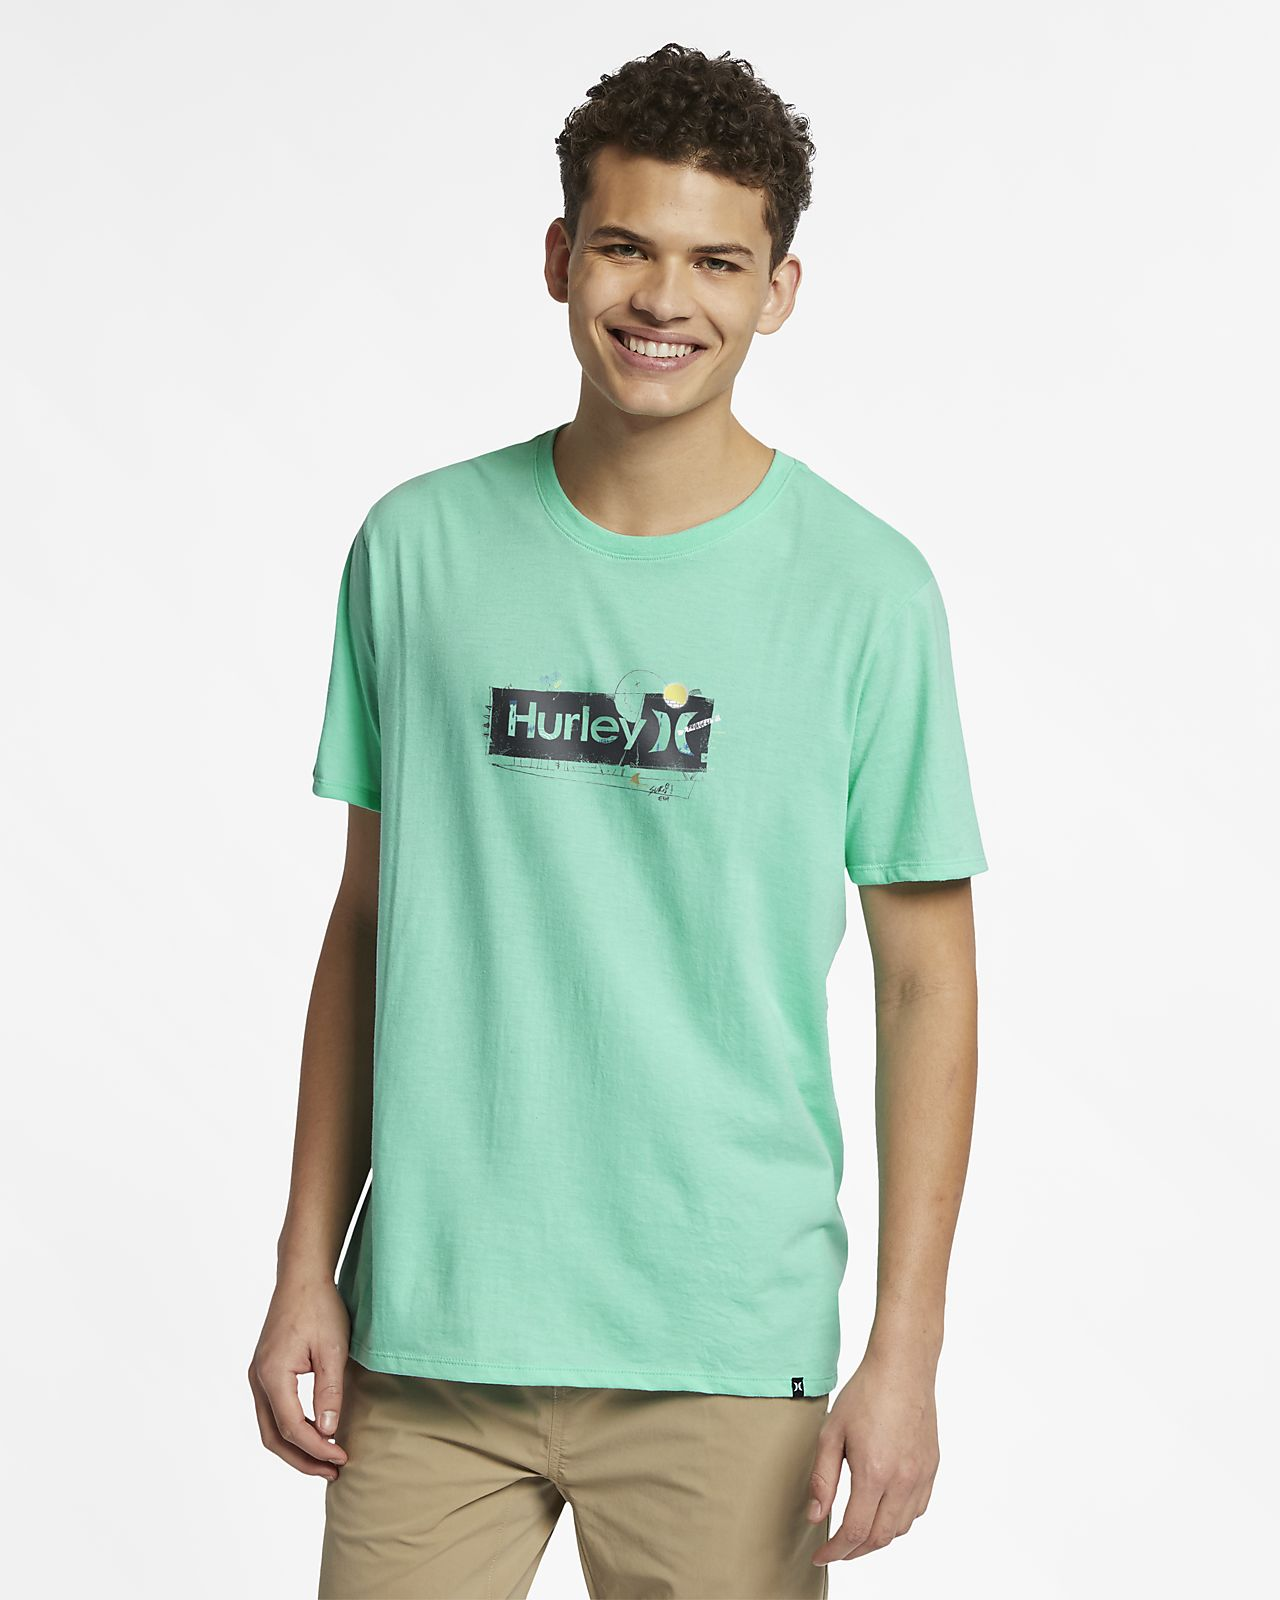 Tee-shirt Hurley Premium One and Only Punked pour Homme